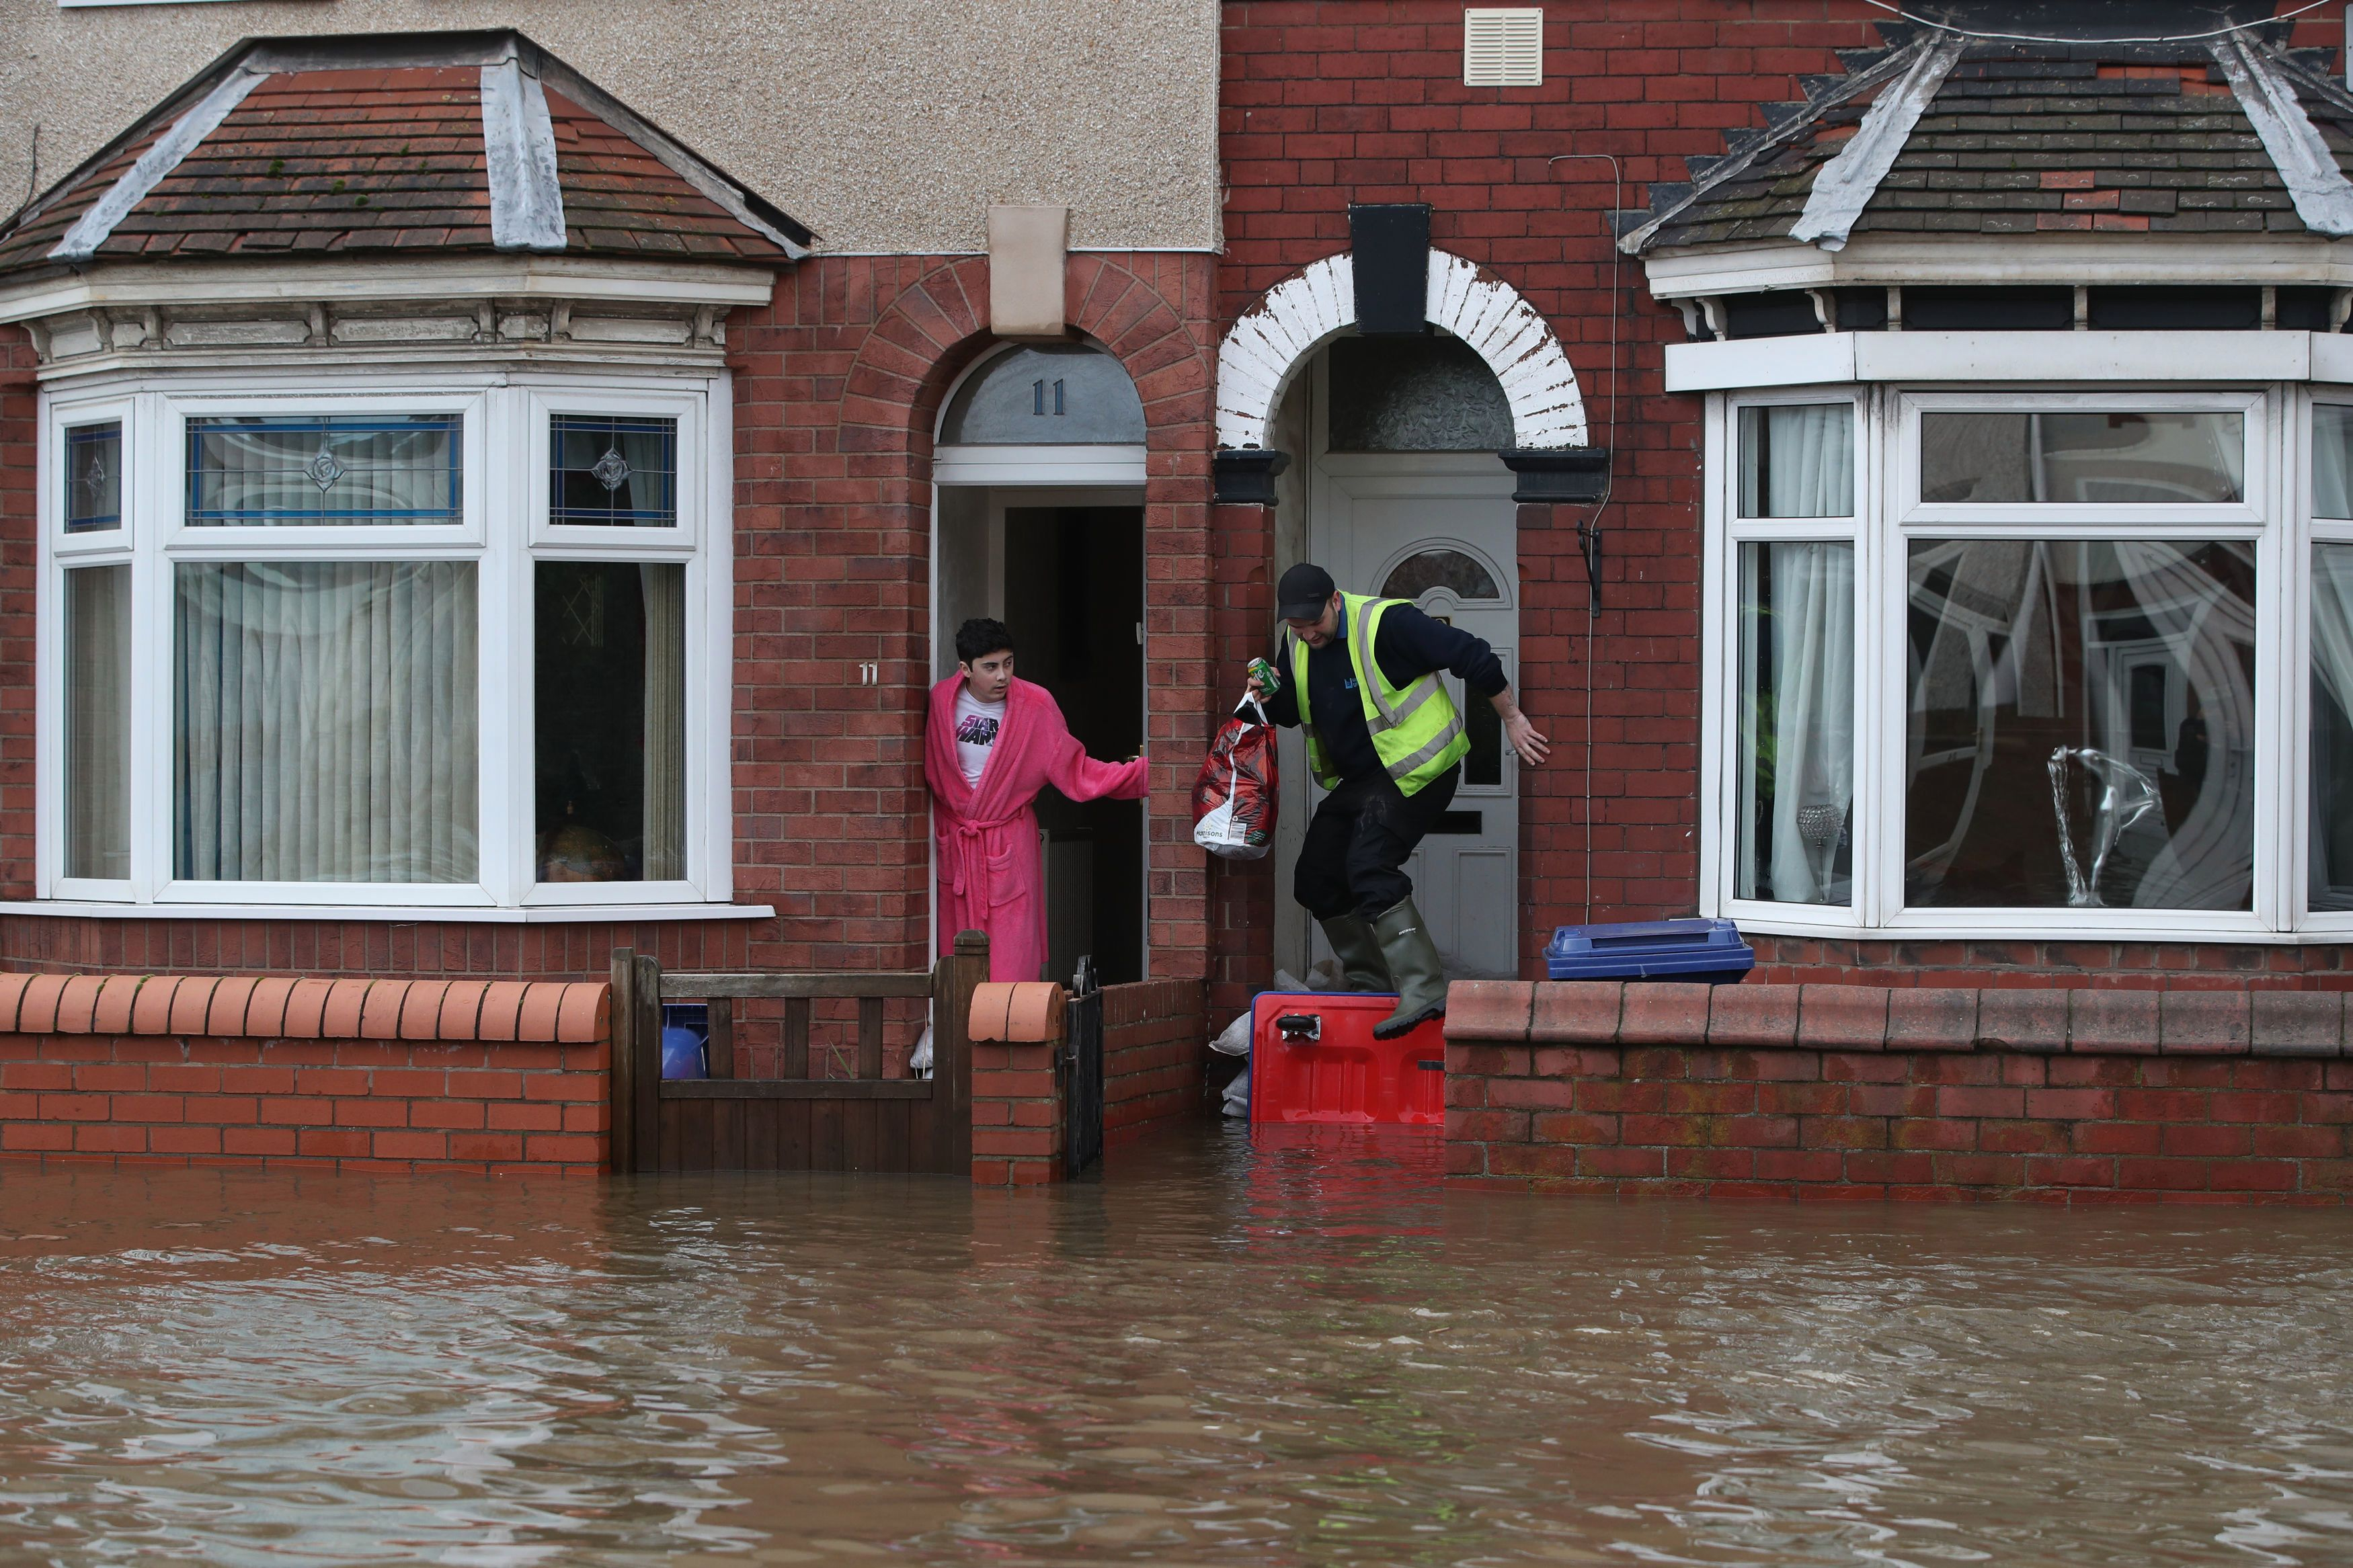 Residents of Yarborough Terrace try to keep the flood waters out of their homes